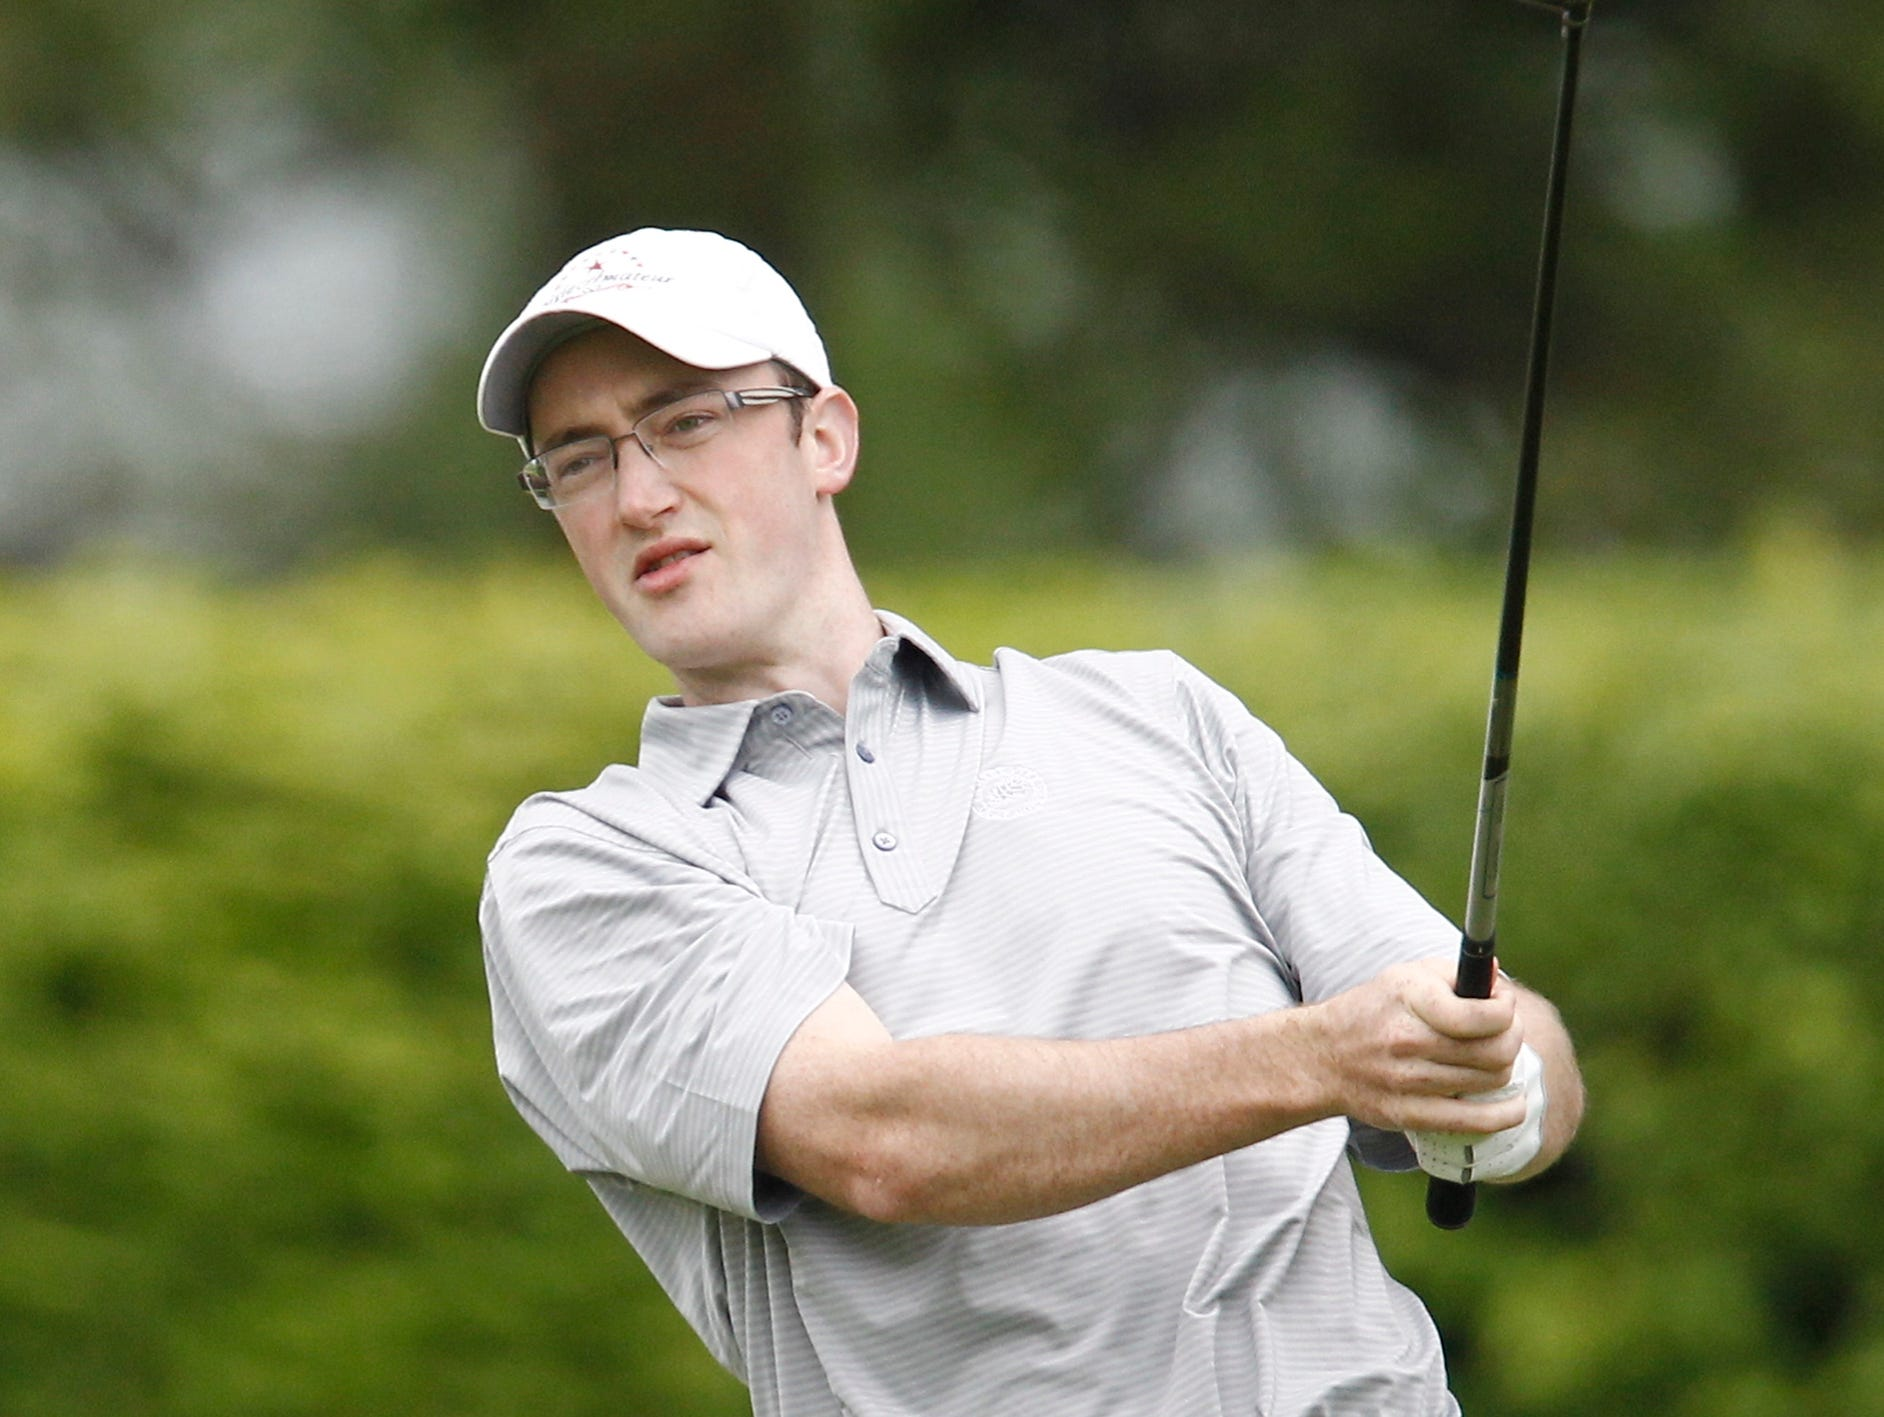 Luke Feehan hits his tee shot on the first hole during day 2 of the 2016 U. S. Amateur Four-Ball Championship at Winged Foot Golf Club in Mamaroneck on Sunday, May 22, 2016.